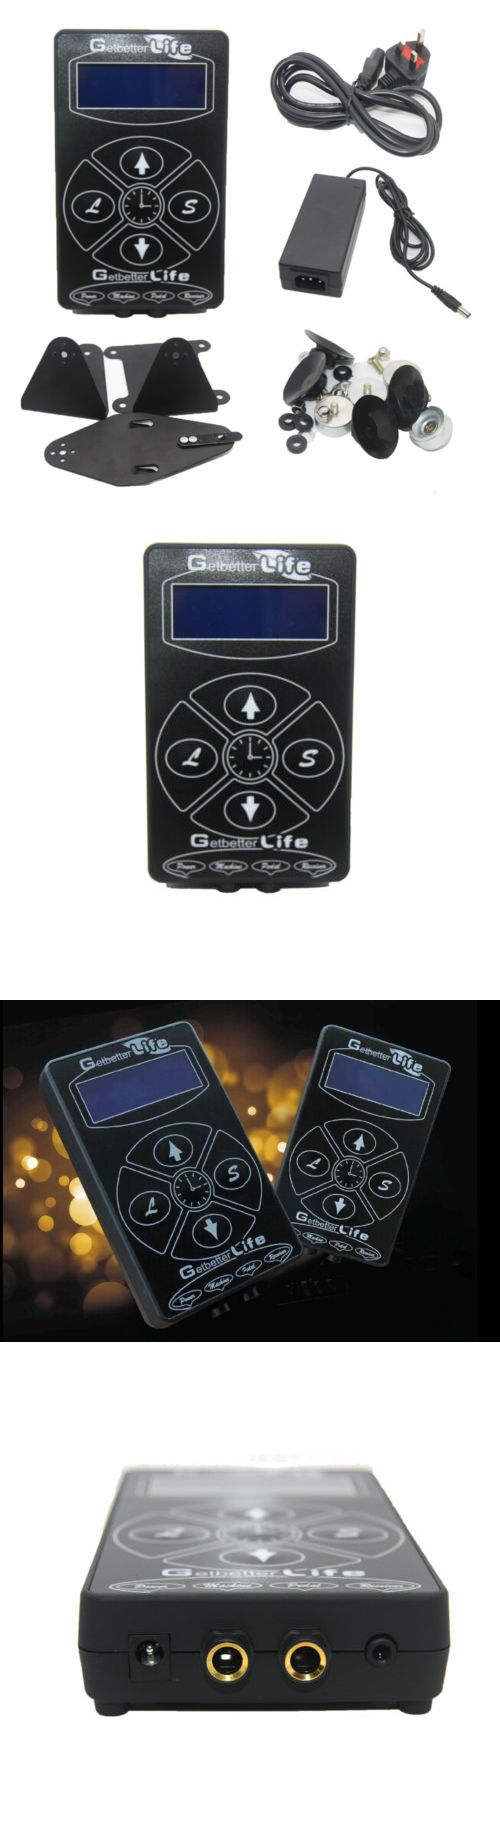 Tattoo Supplies: Getbetterlife Pro Black Digital Dual Lcd Tattoo Power Supply For Machine Gun -> BUY IT NOW ONLY: $31.99 on eBay!